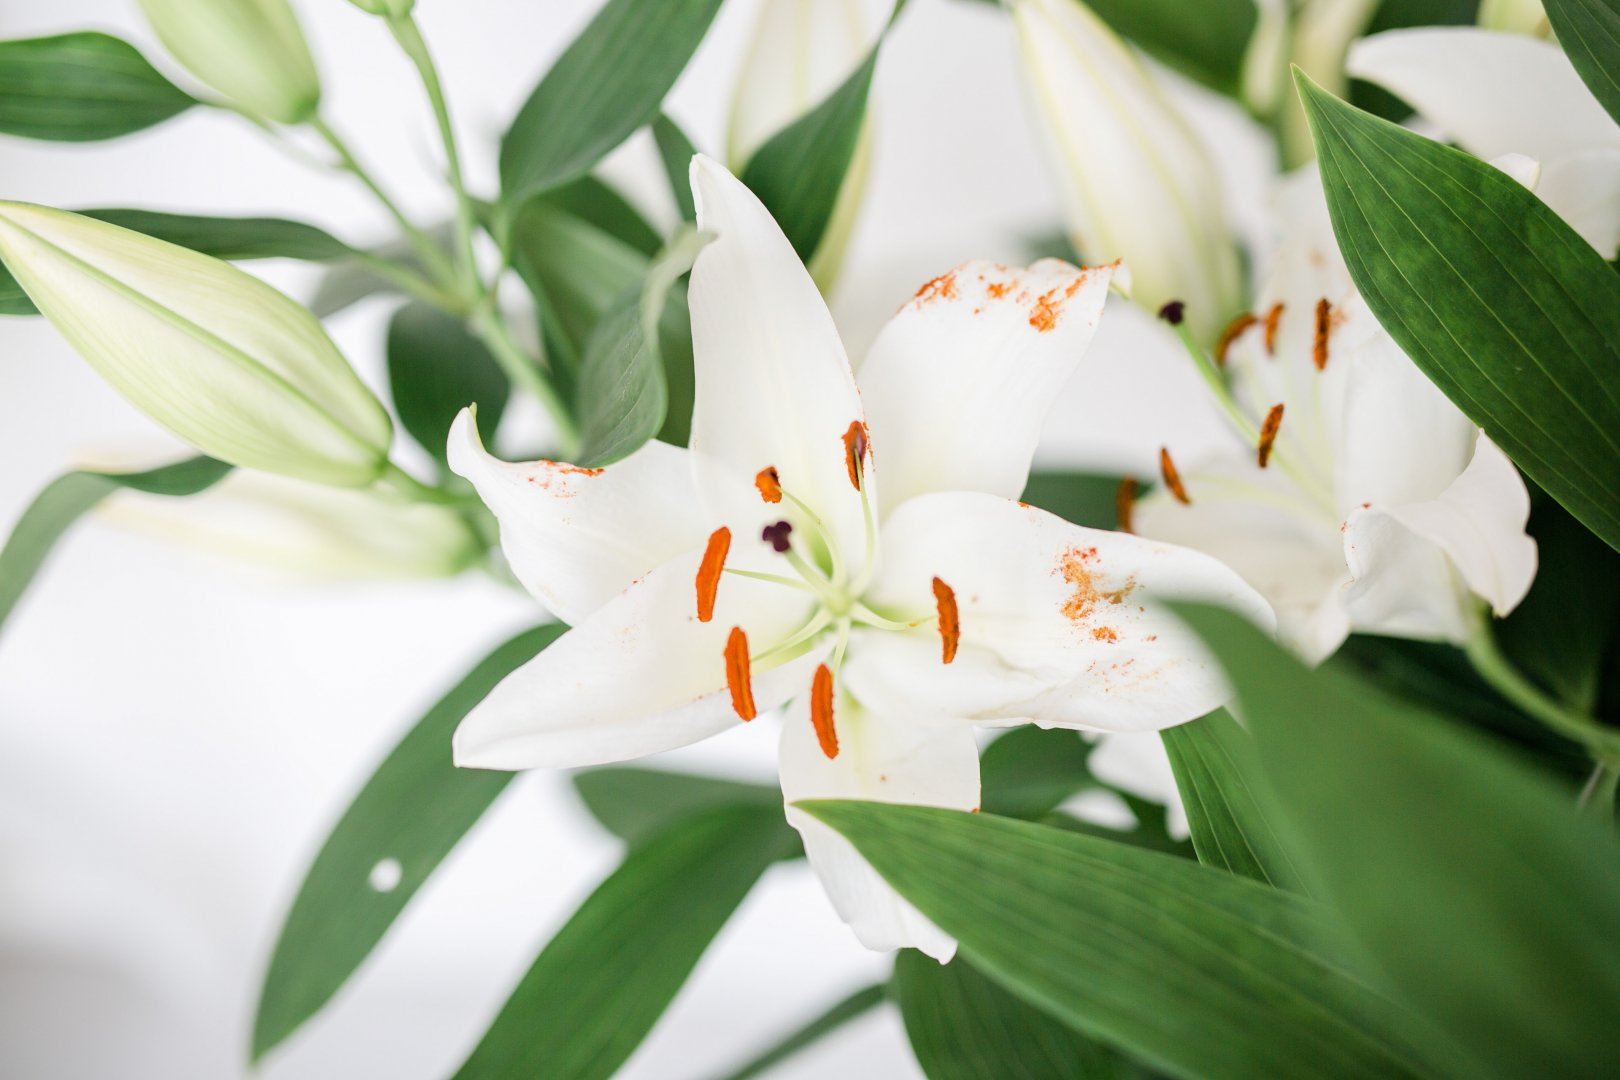 Flower Lily Flowering plant White Petal Plant Lily family Botany Terrestrial plant stargazer lily Lily order Houseplant tiger lily Hippeastrum